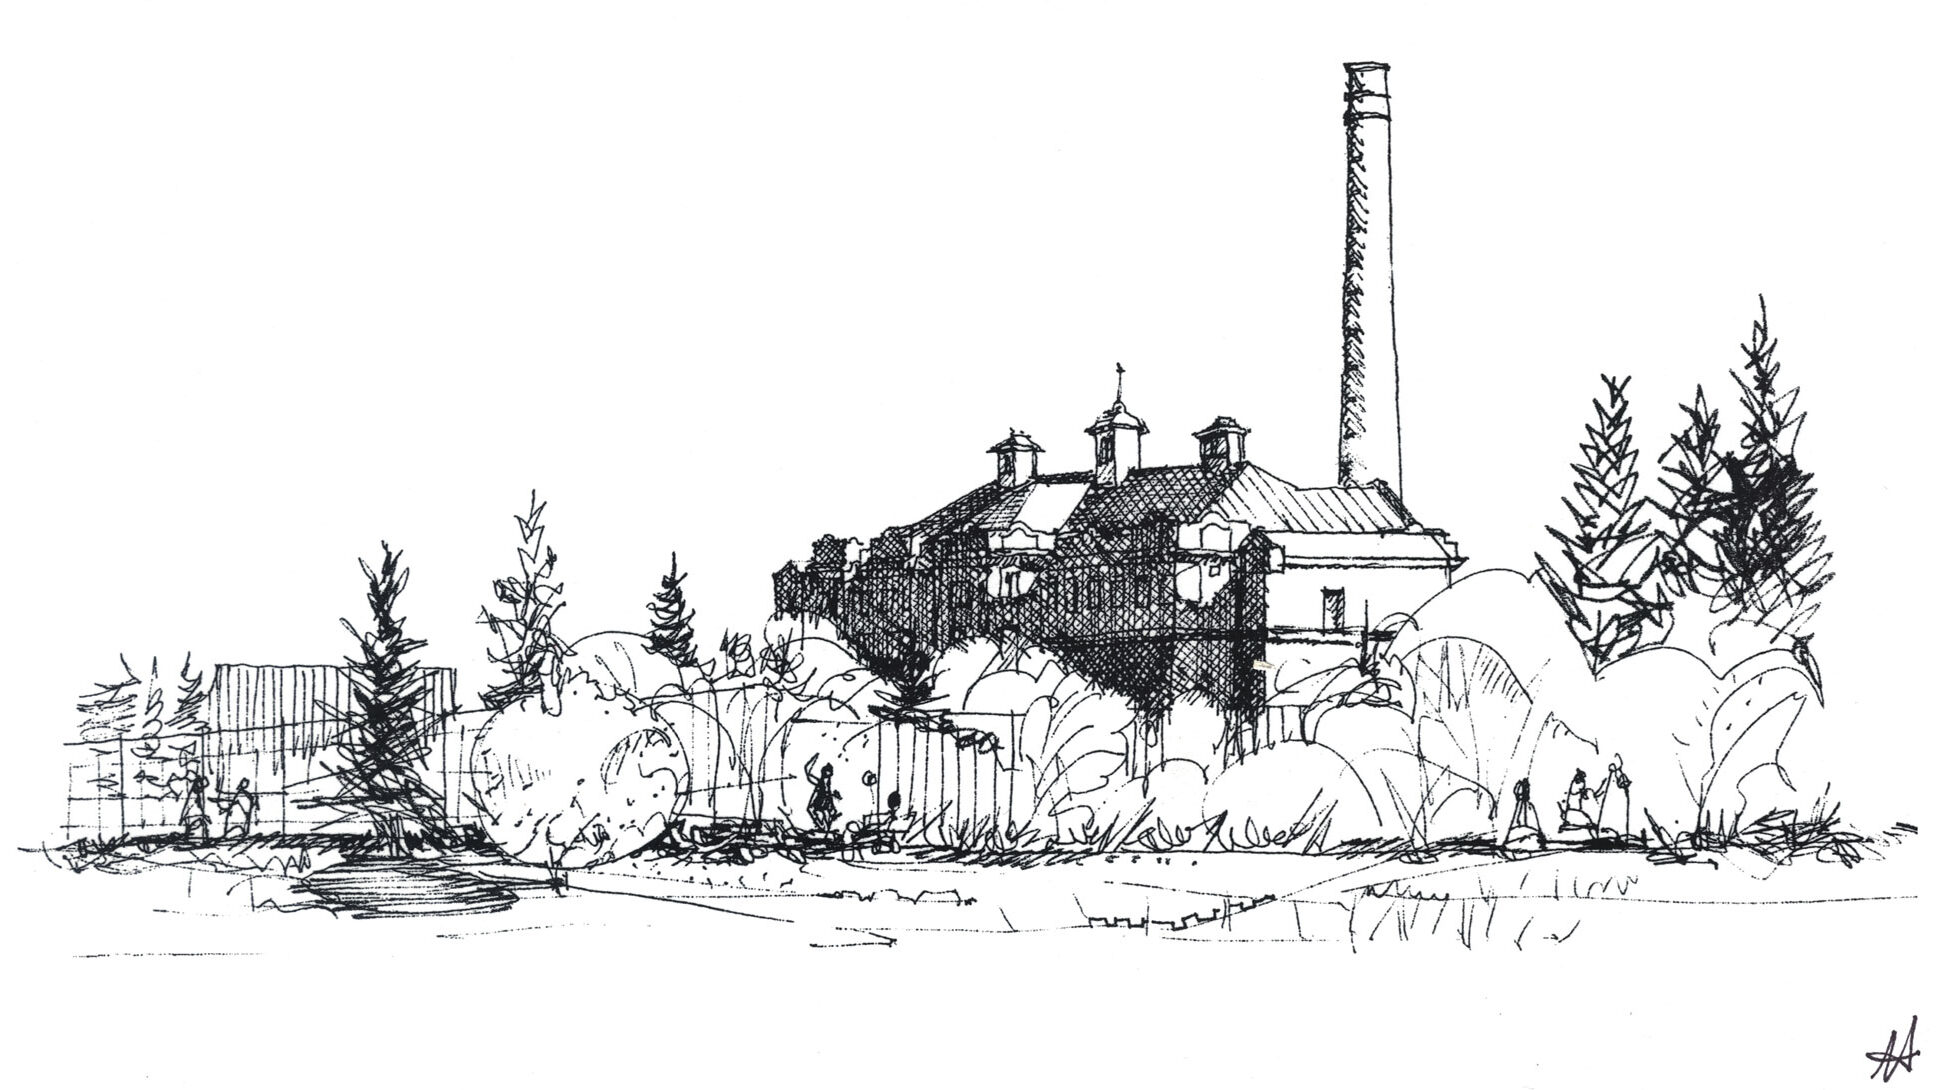 sketch of large institution behind some trees, tall smoke stack visible